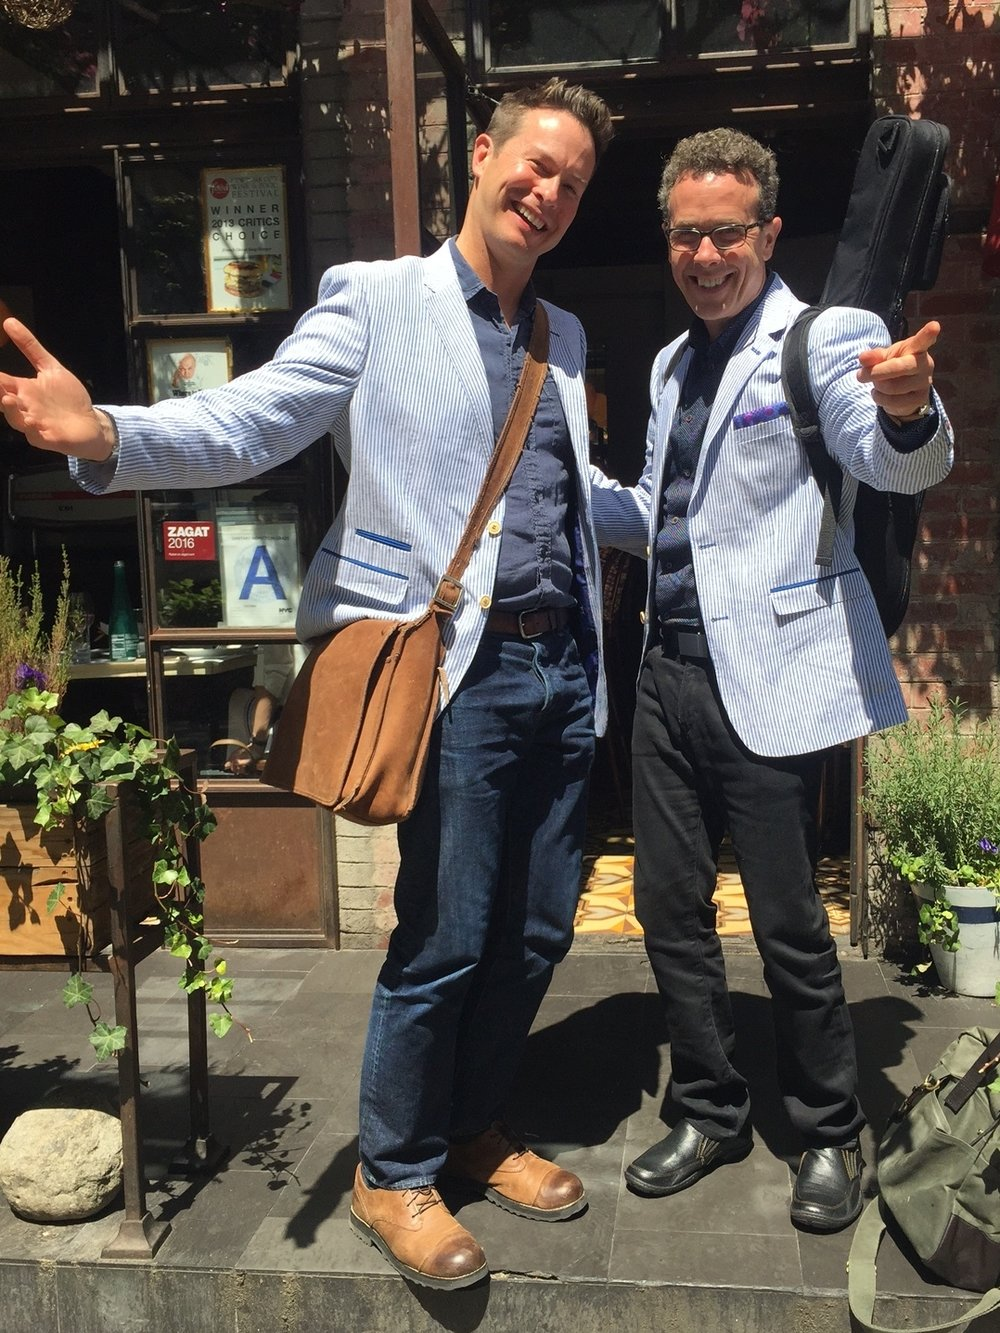 Author Eric Litwin and me one day in New York City!